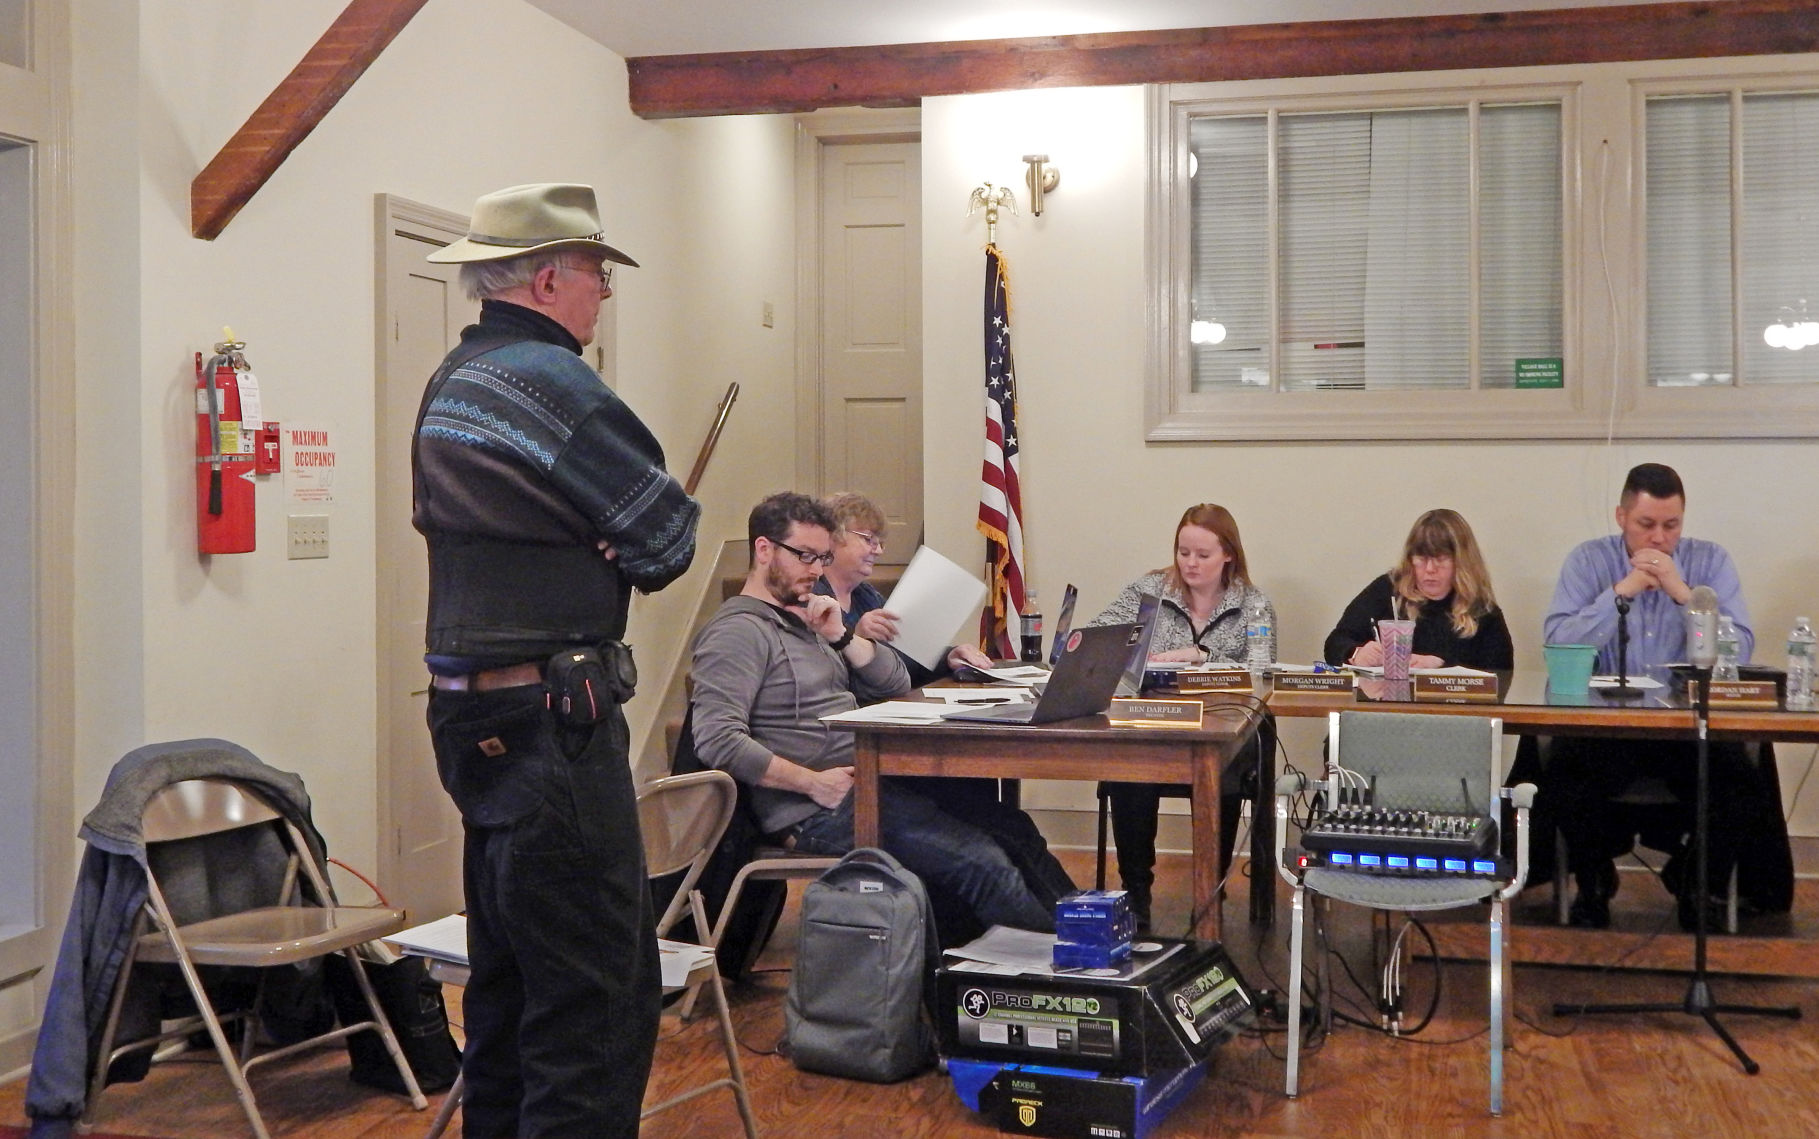 Jules Burgevin, 85, of Trumansburg, tells the Trumansburg Village Board of Trustees May 13 about a new committee he is forming called the West Cayuga Lake Committee for the Prevention of Nuclear War and the Admonition of Nuclear Weapons.